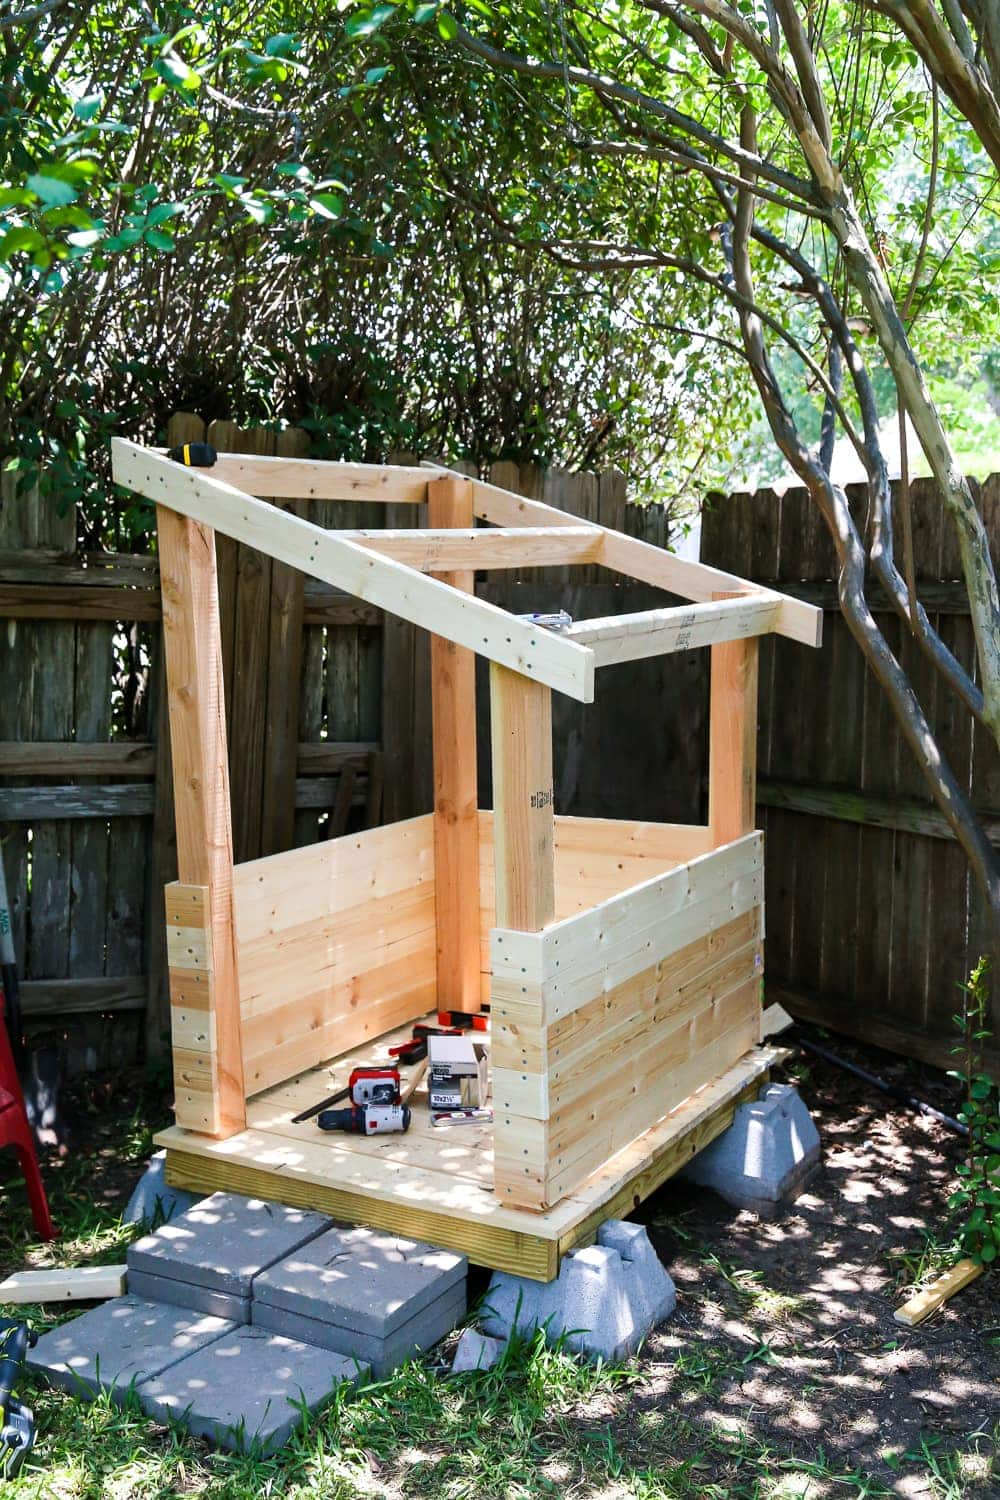 Diy Playhouse How To Build A Backyard Playhouse For Your Toddler with 11 Awesome Ideas How to Craft Backyard Playhouse Ideas